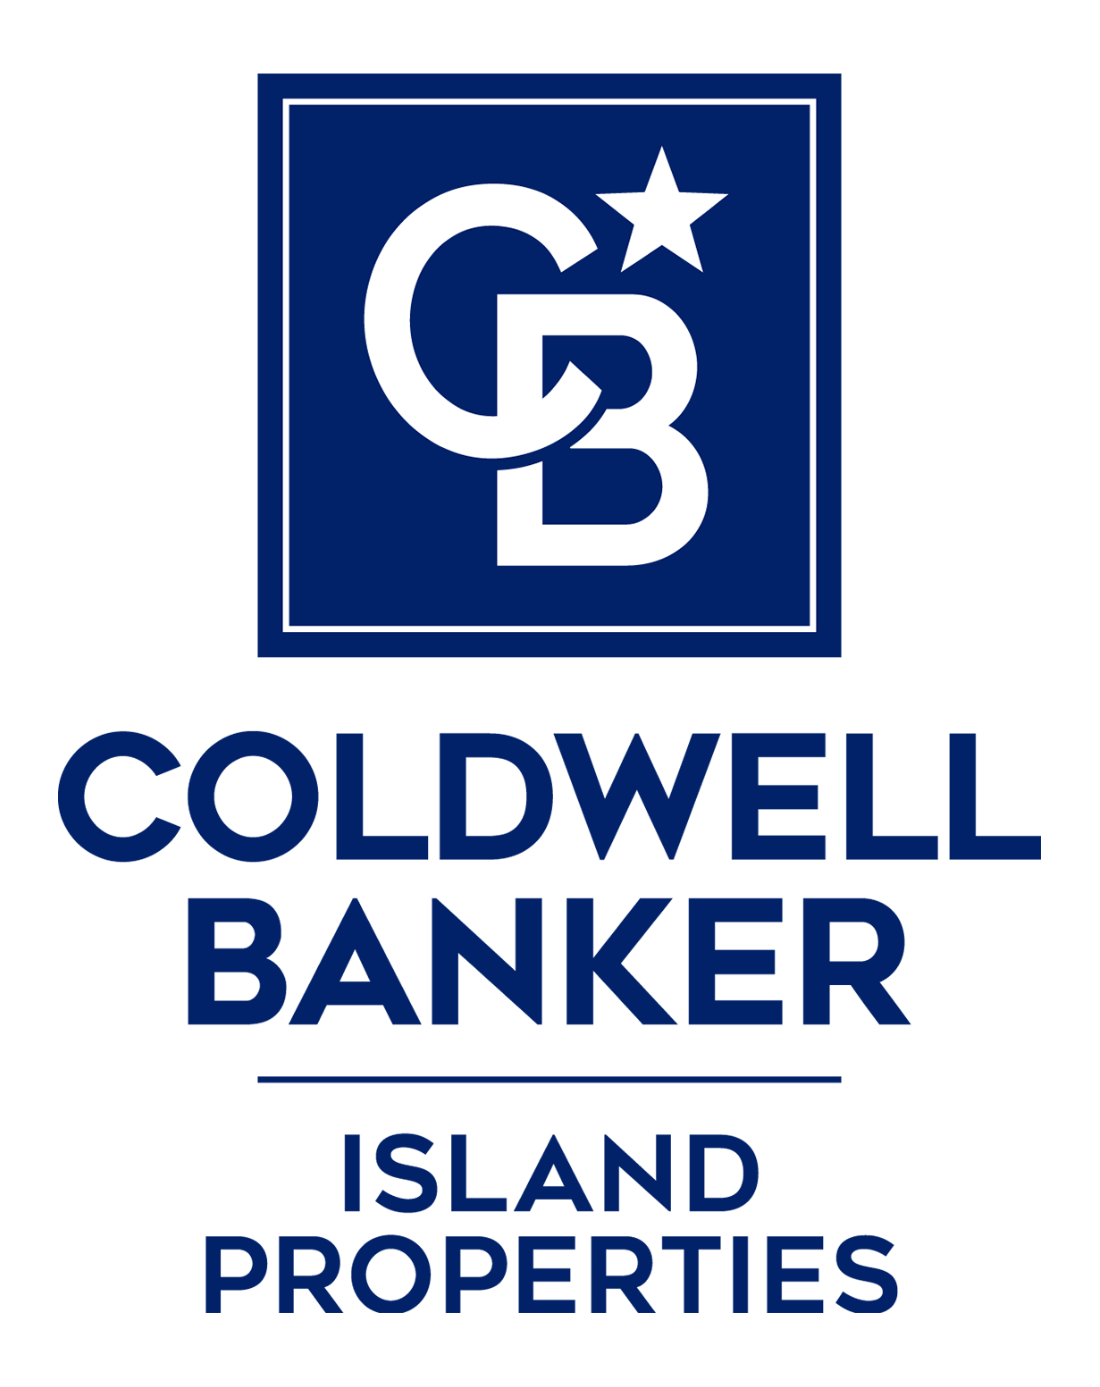 Daniel Richards - Coldwell Banker Island Properties Logo